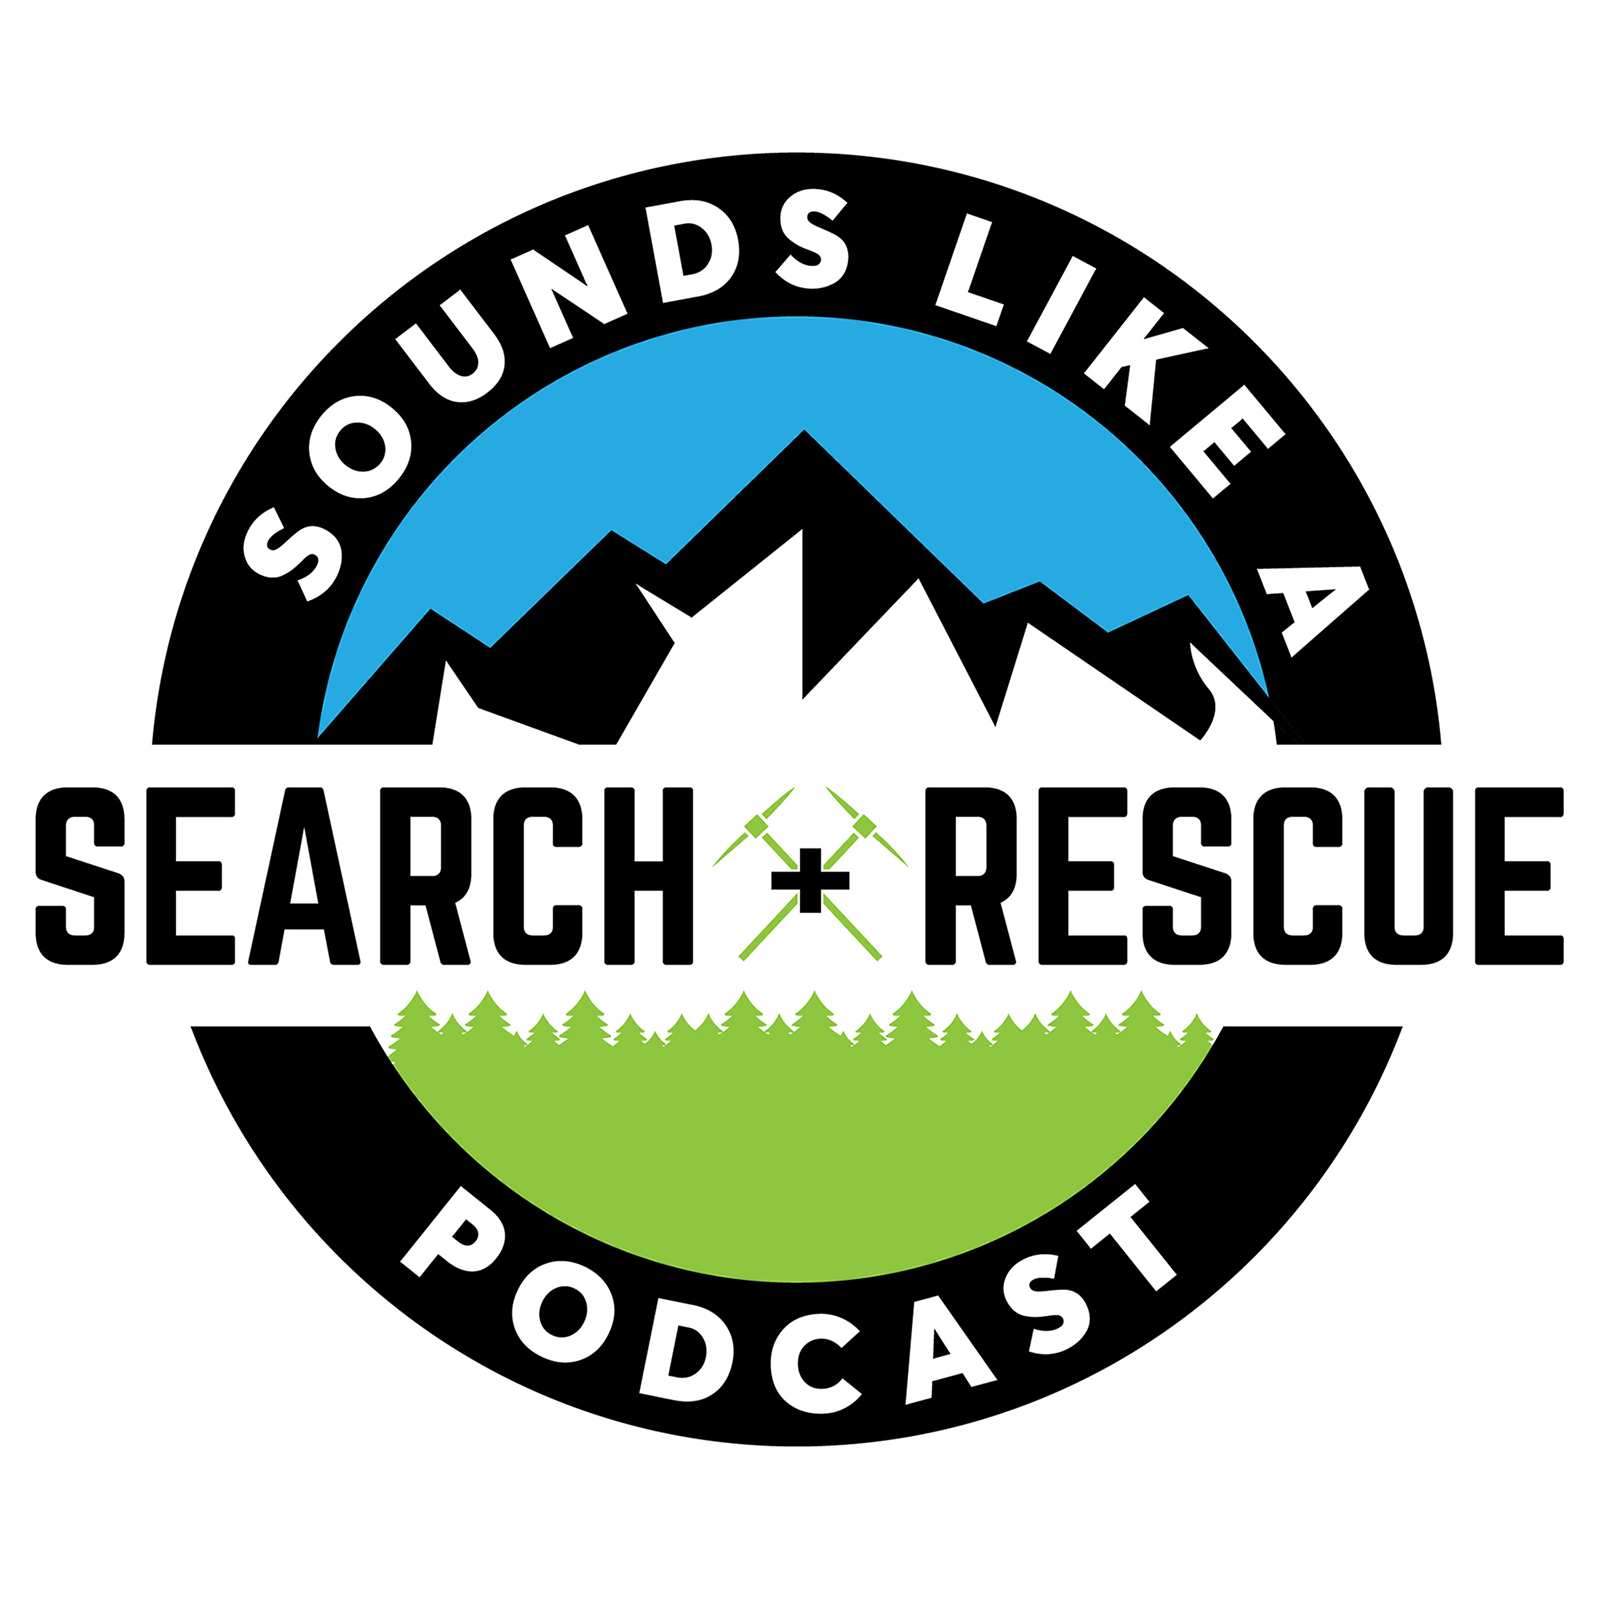 Episode 15 - Recent Search & Rescue News and Long Distance Hiking Talk